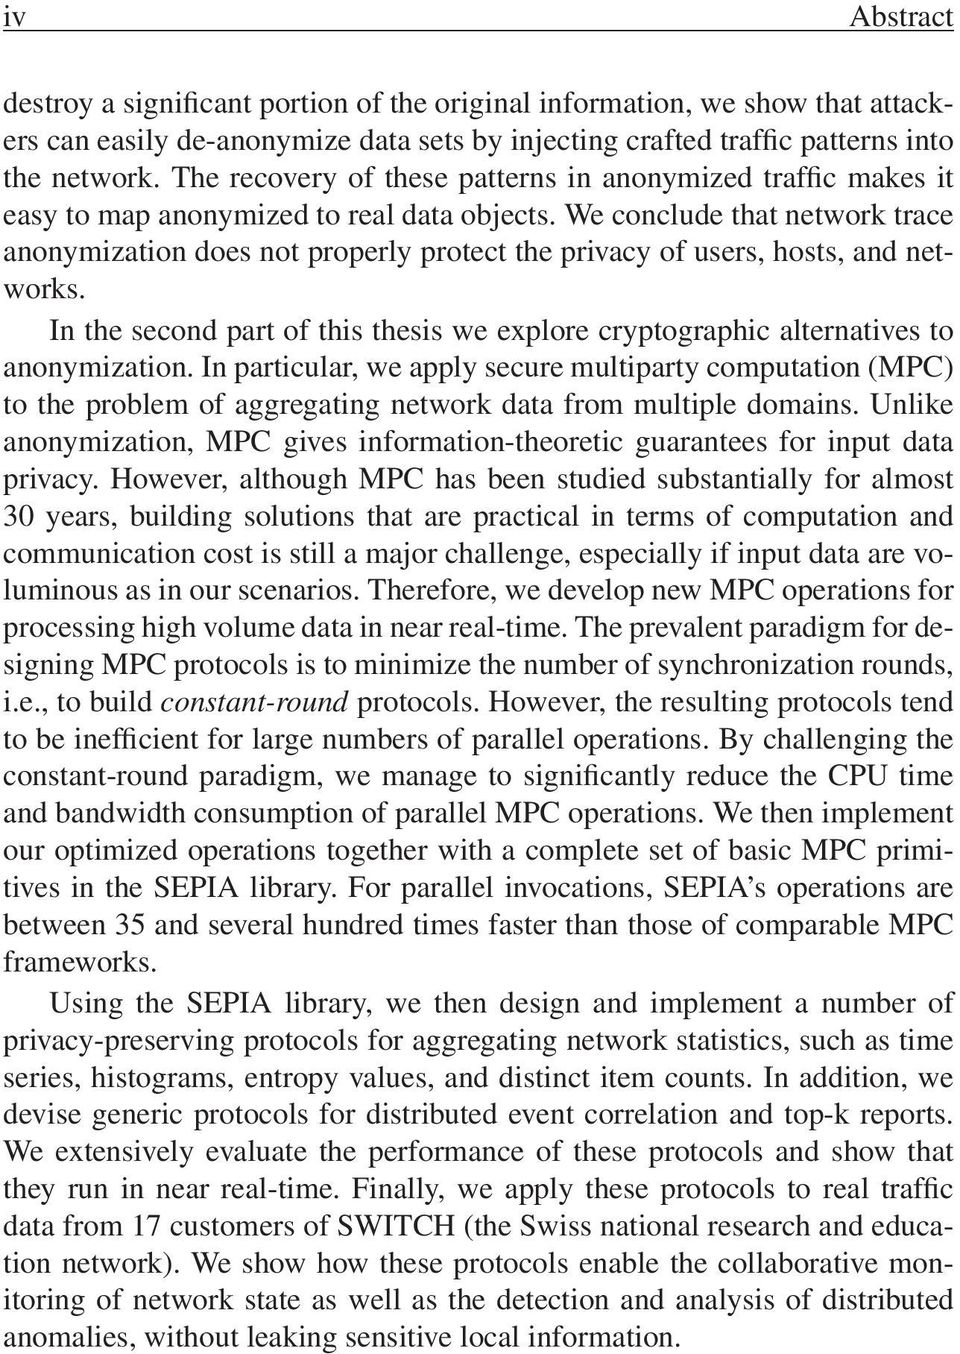 We conclude that network trace anonymization does not properly protect the privacy of users, hosts, and networks.